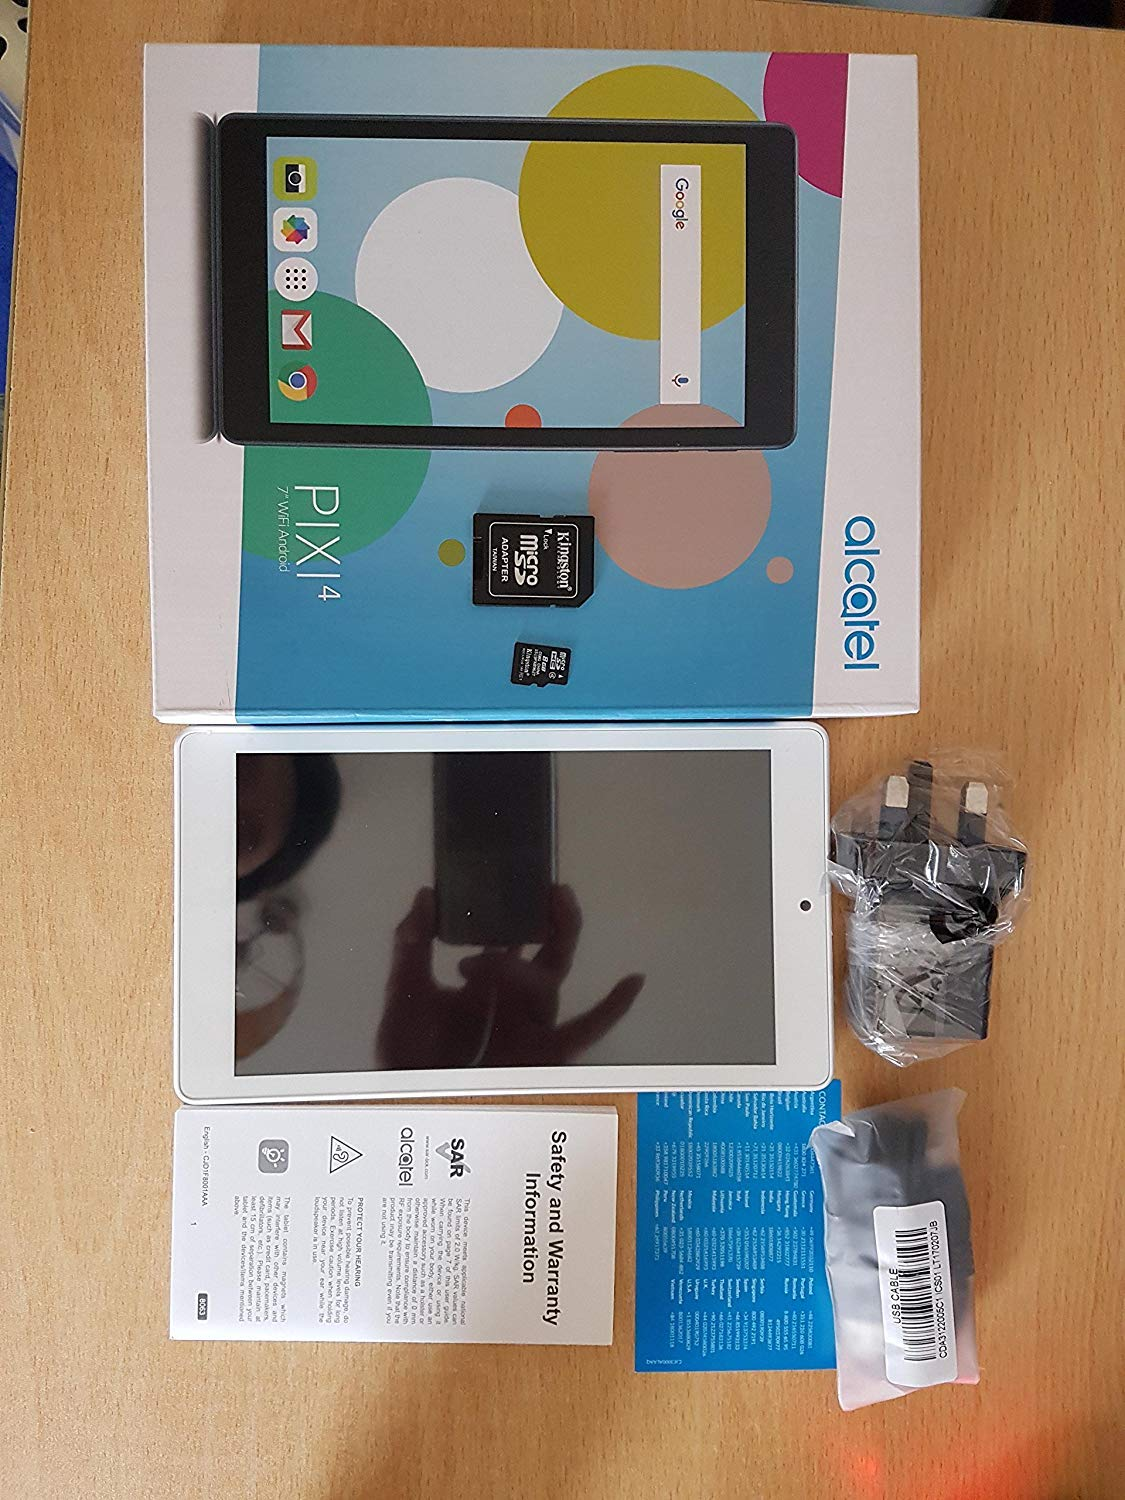 Alcatel OneTouch Pixi 4 (7 inch) WiFi Tablet 8GB+1GB BT (2MP) Camera Android M (White)